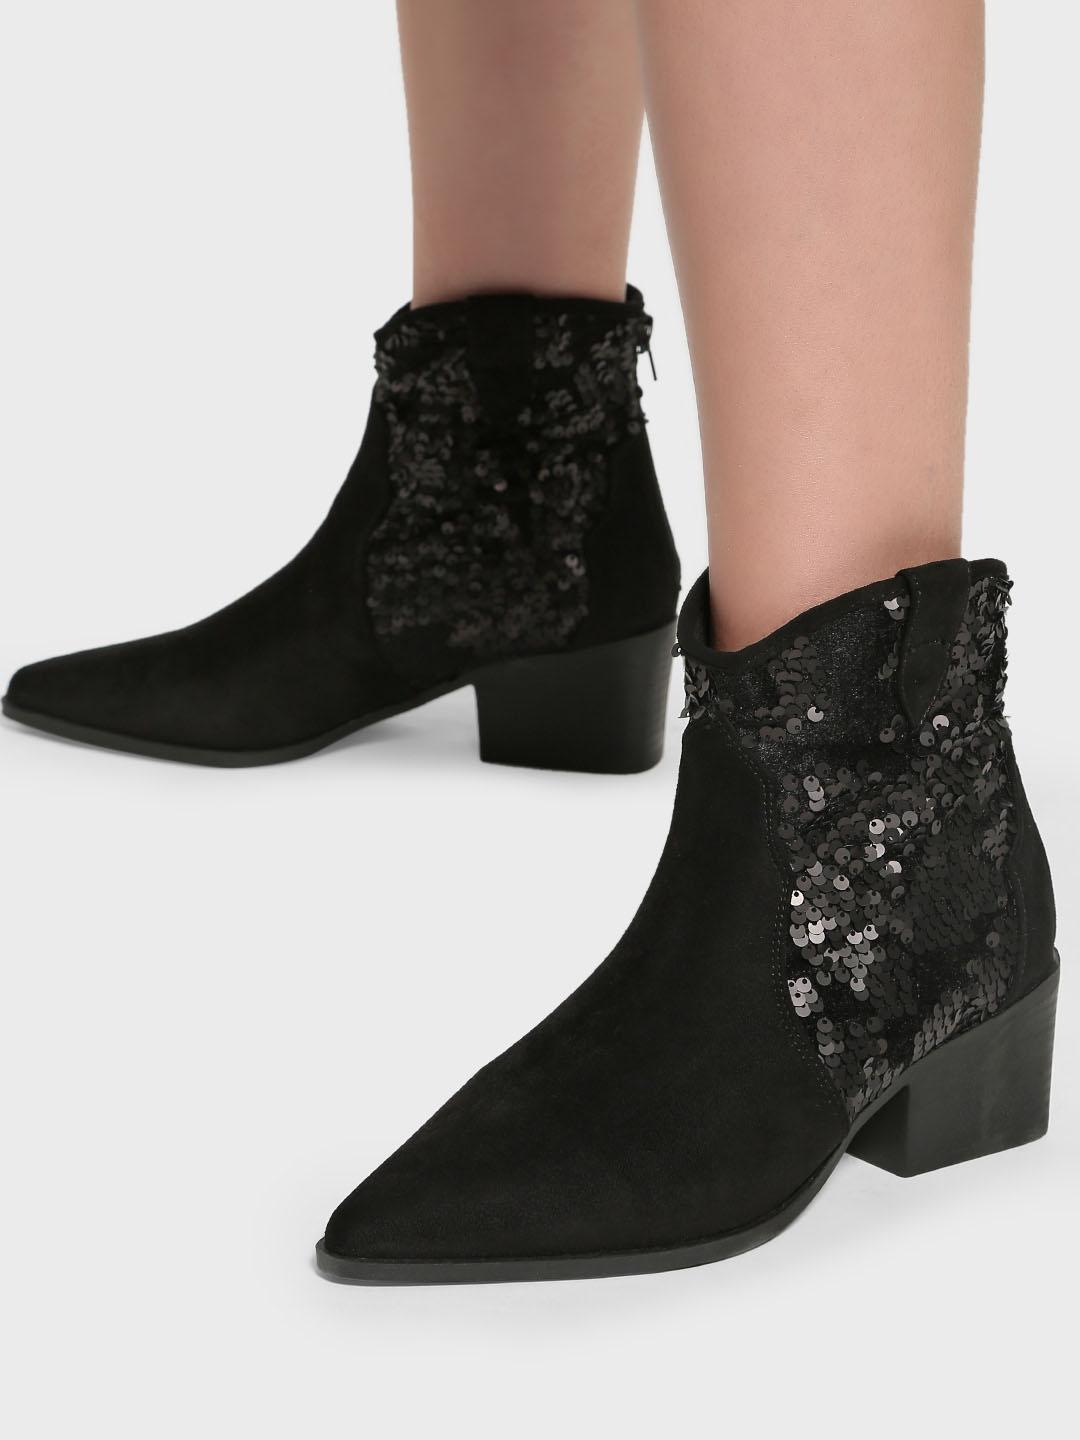 Intoto Black Suede Sequin Embellished Cowboy Boots 1